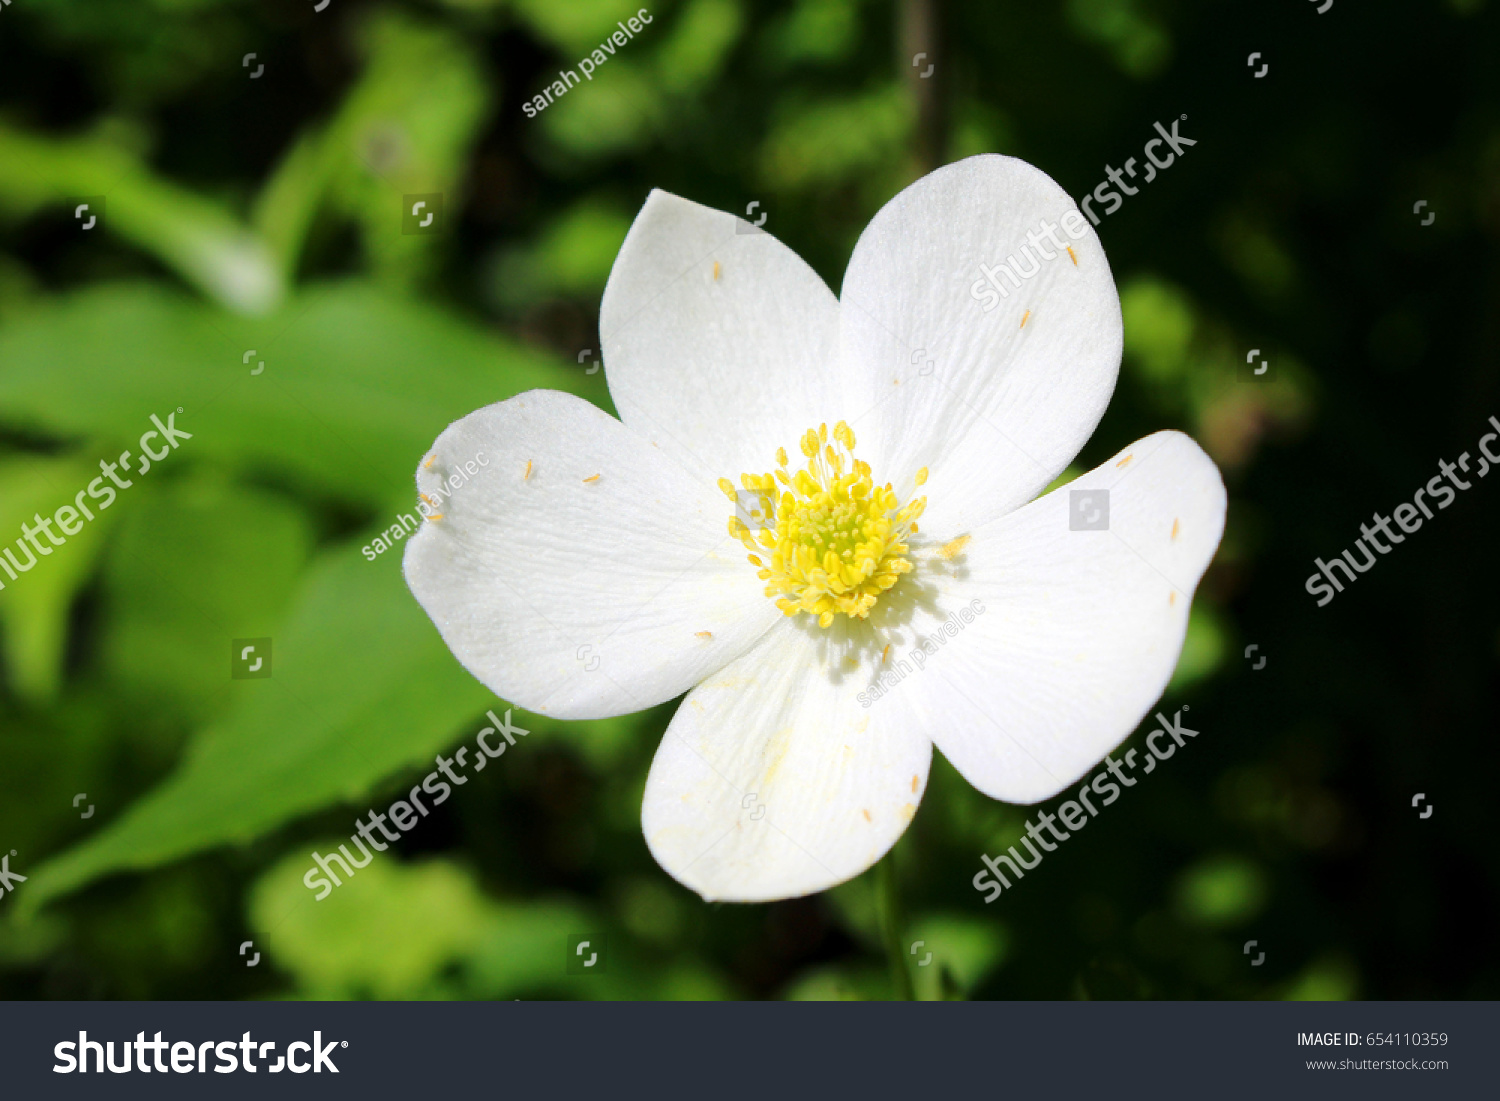 White Flower Yellow Middle Green Background Ez Canvas